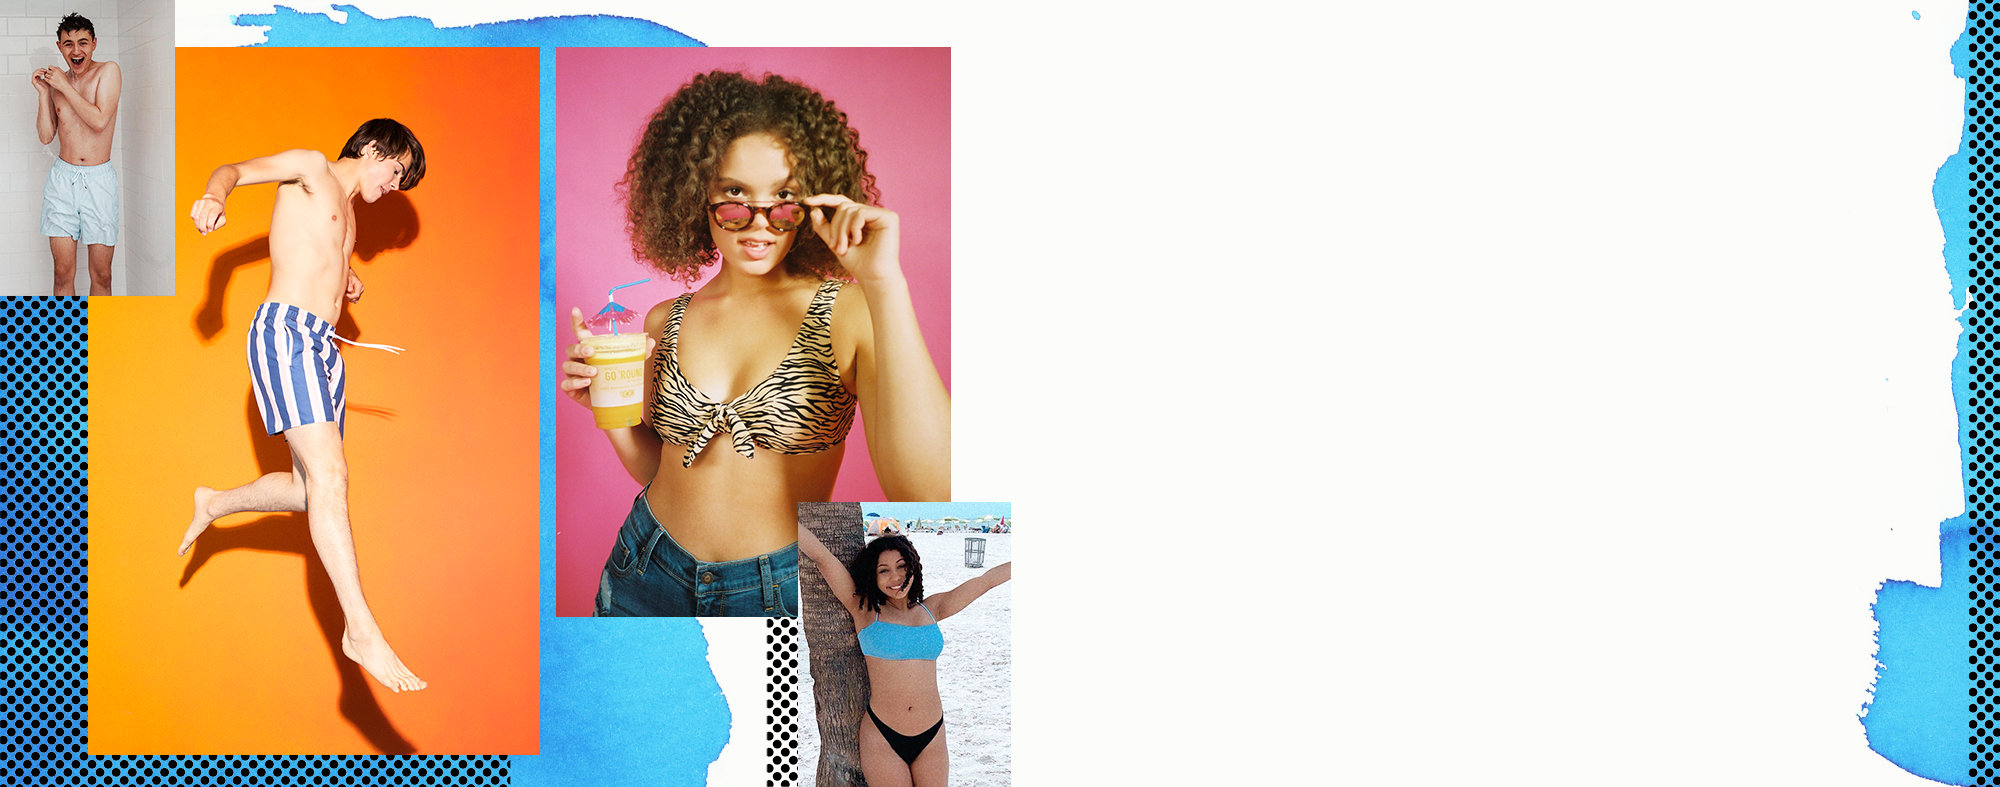 e27cfa58b8 all the swim vibes Make this summer a whole vibe with new swimwear for  anywhere.